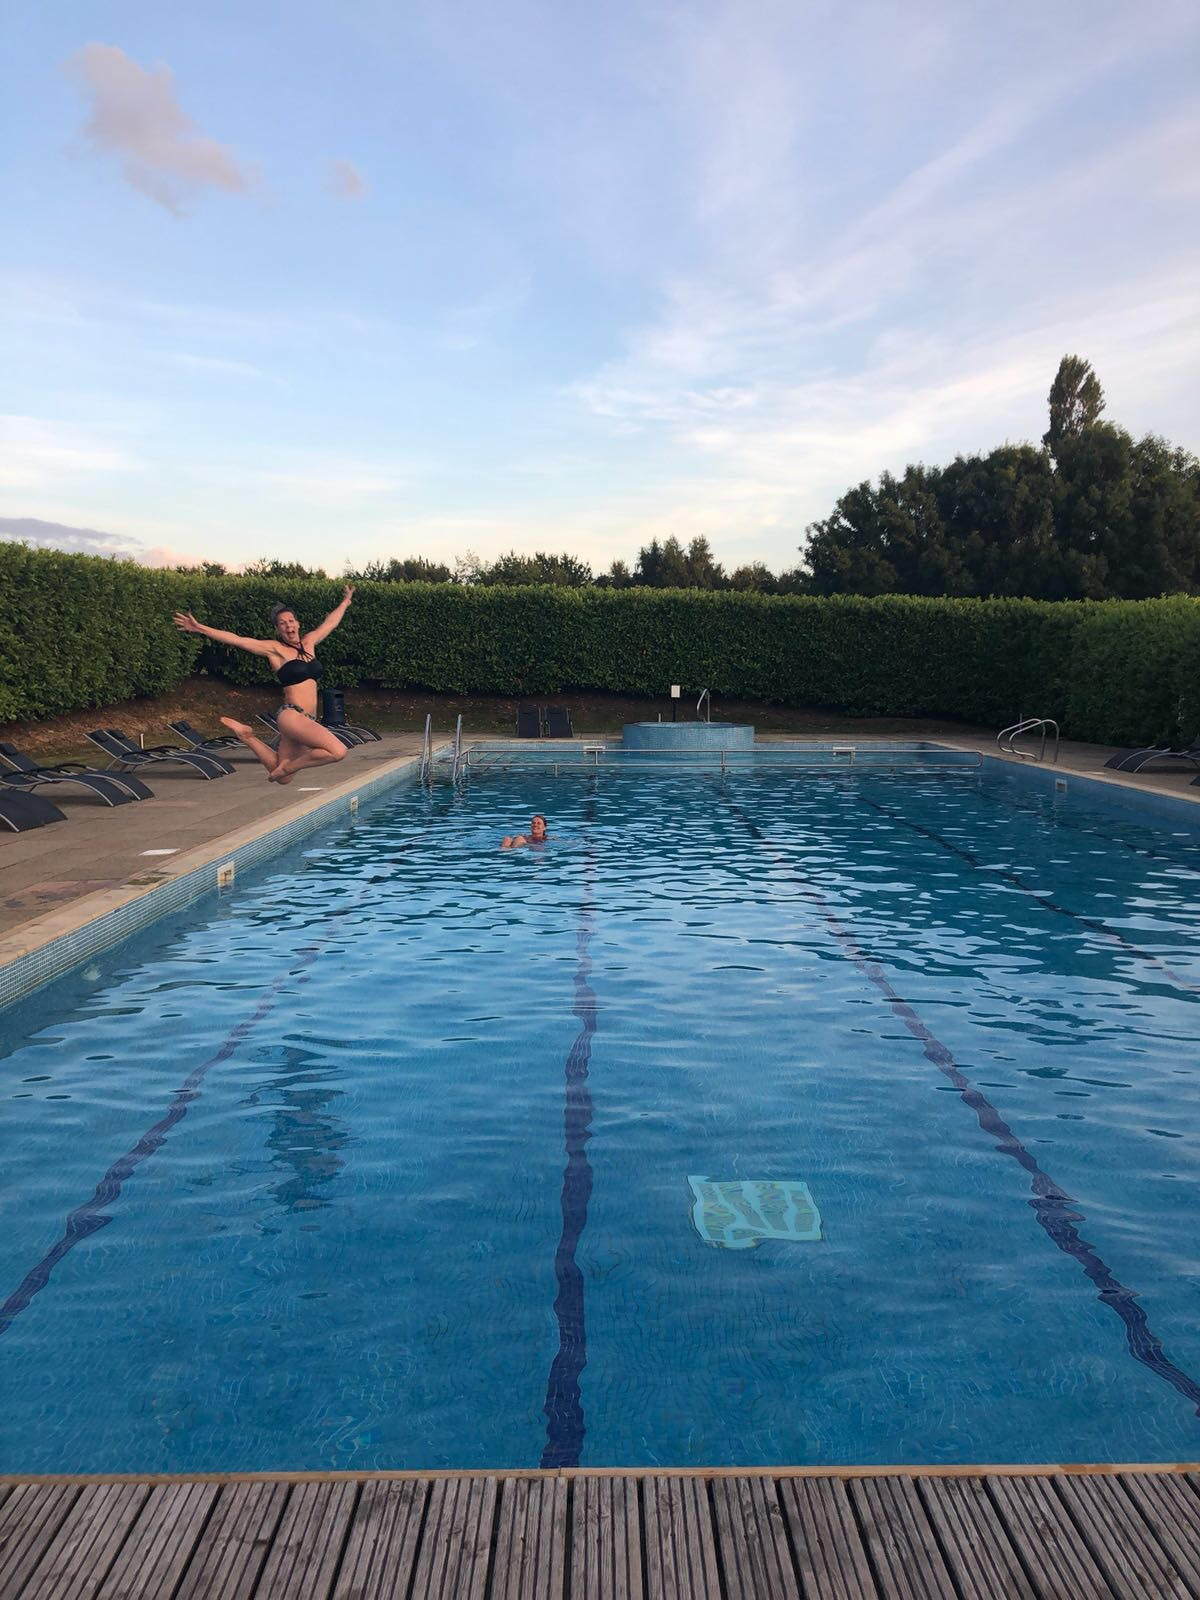 Know when it's time for a routine – top tips after Summer holidays